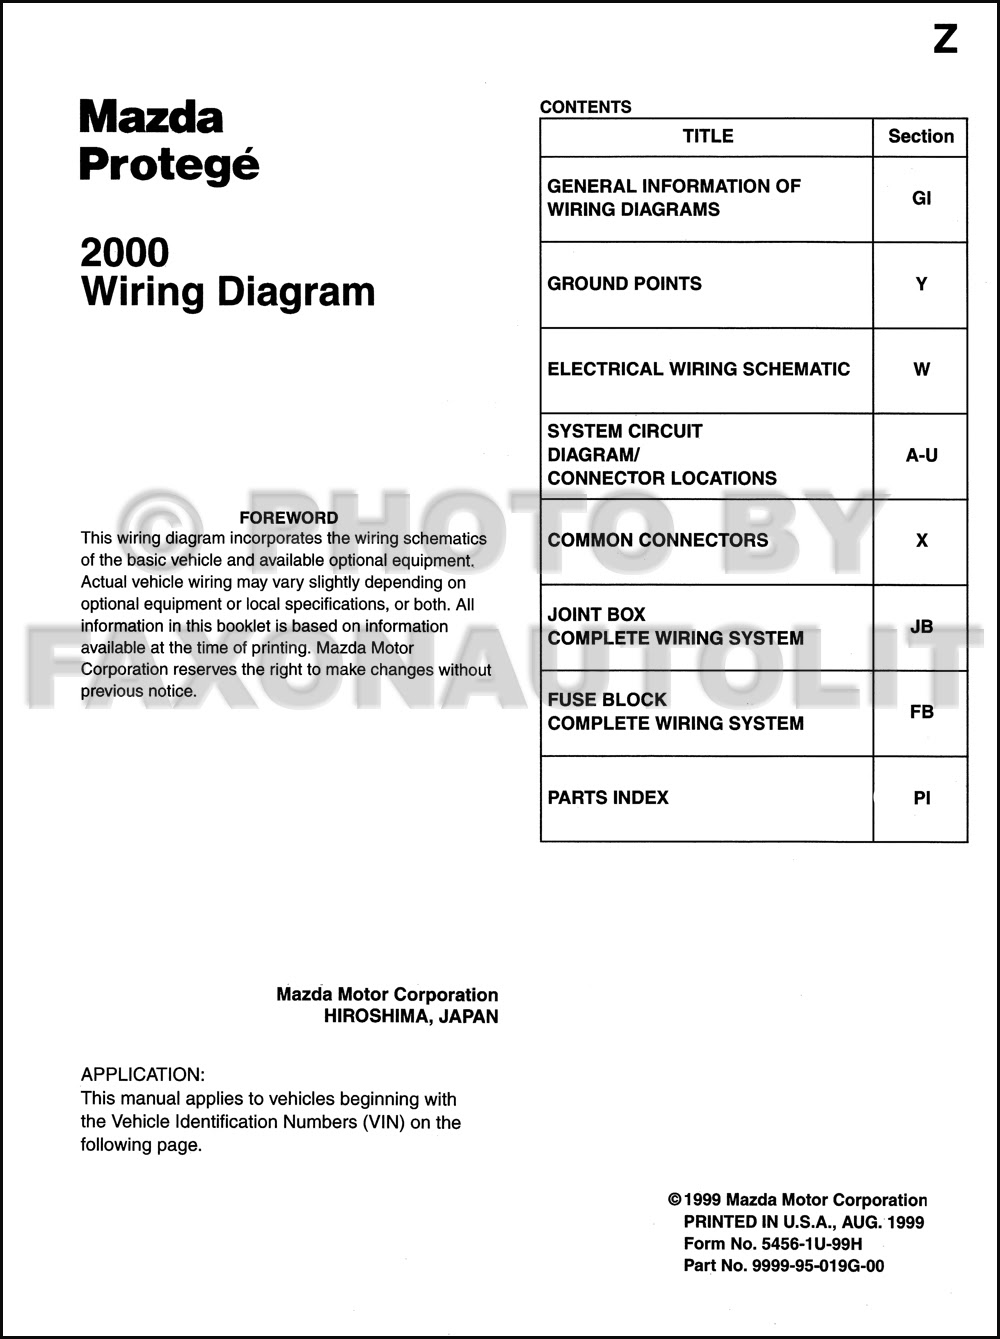 Diagram 1999 Mazda Protege Wiring Diagram Full Version Hd Quality Wiring Diagram Tawndiagram Radd Fr